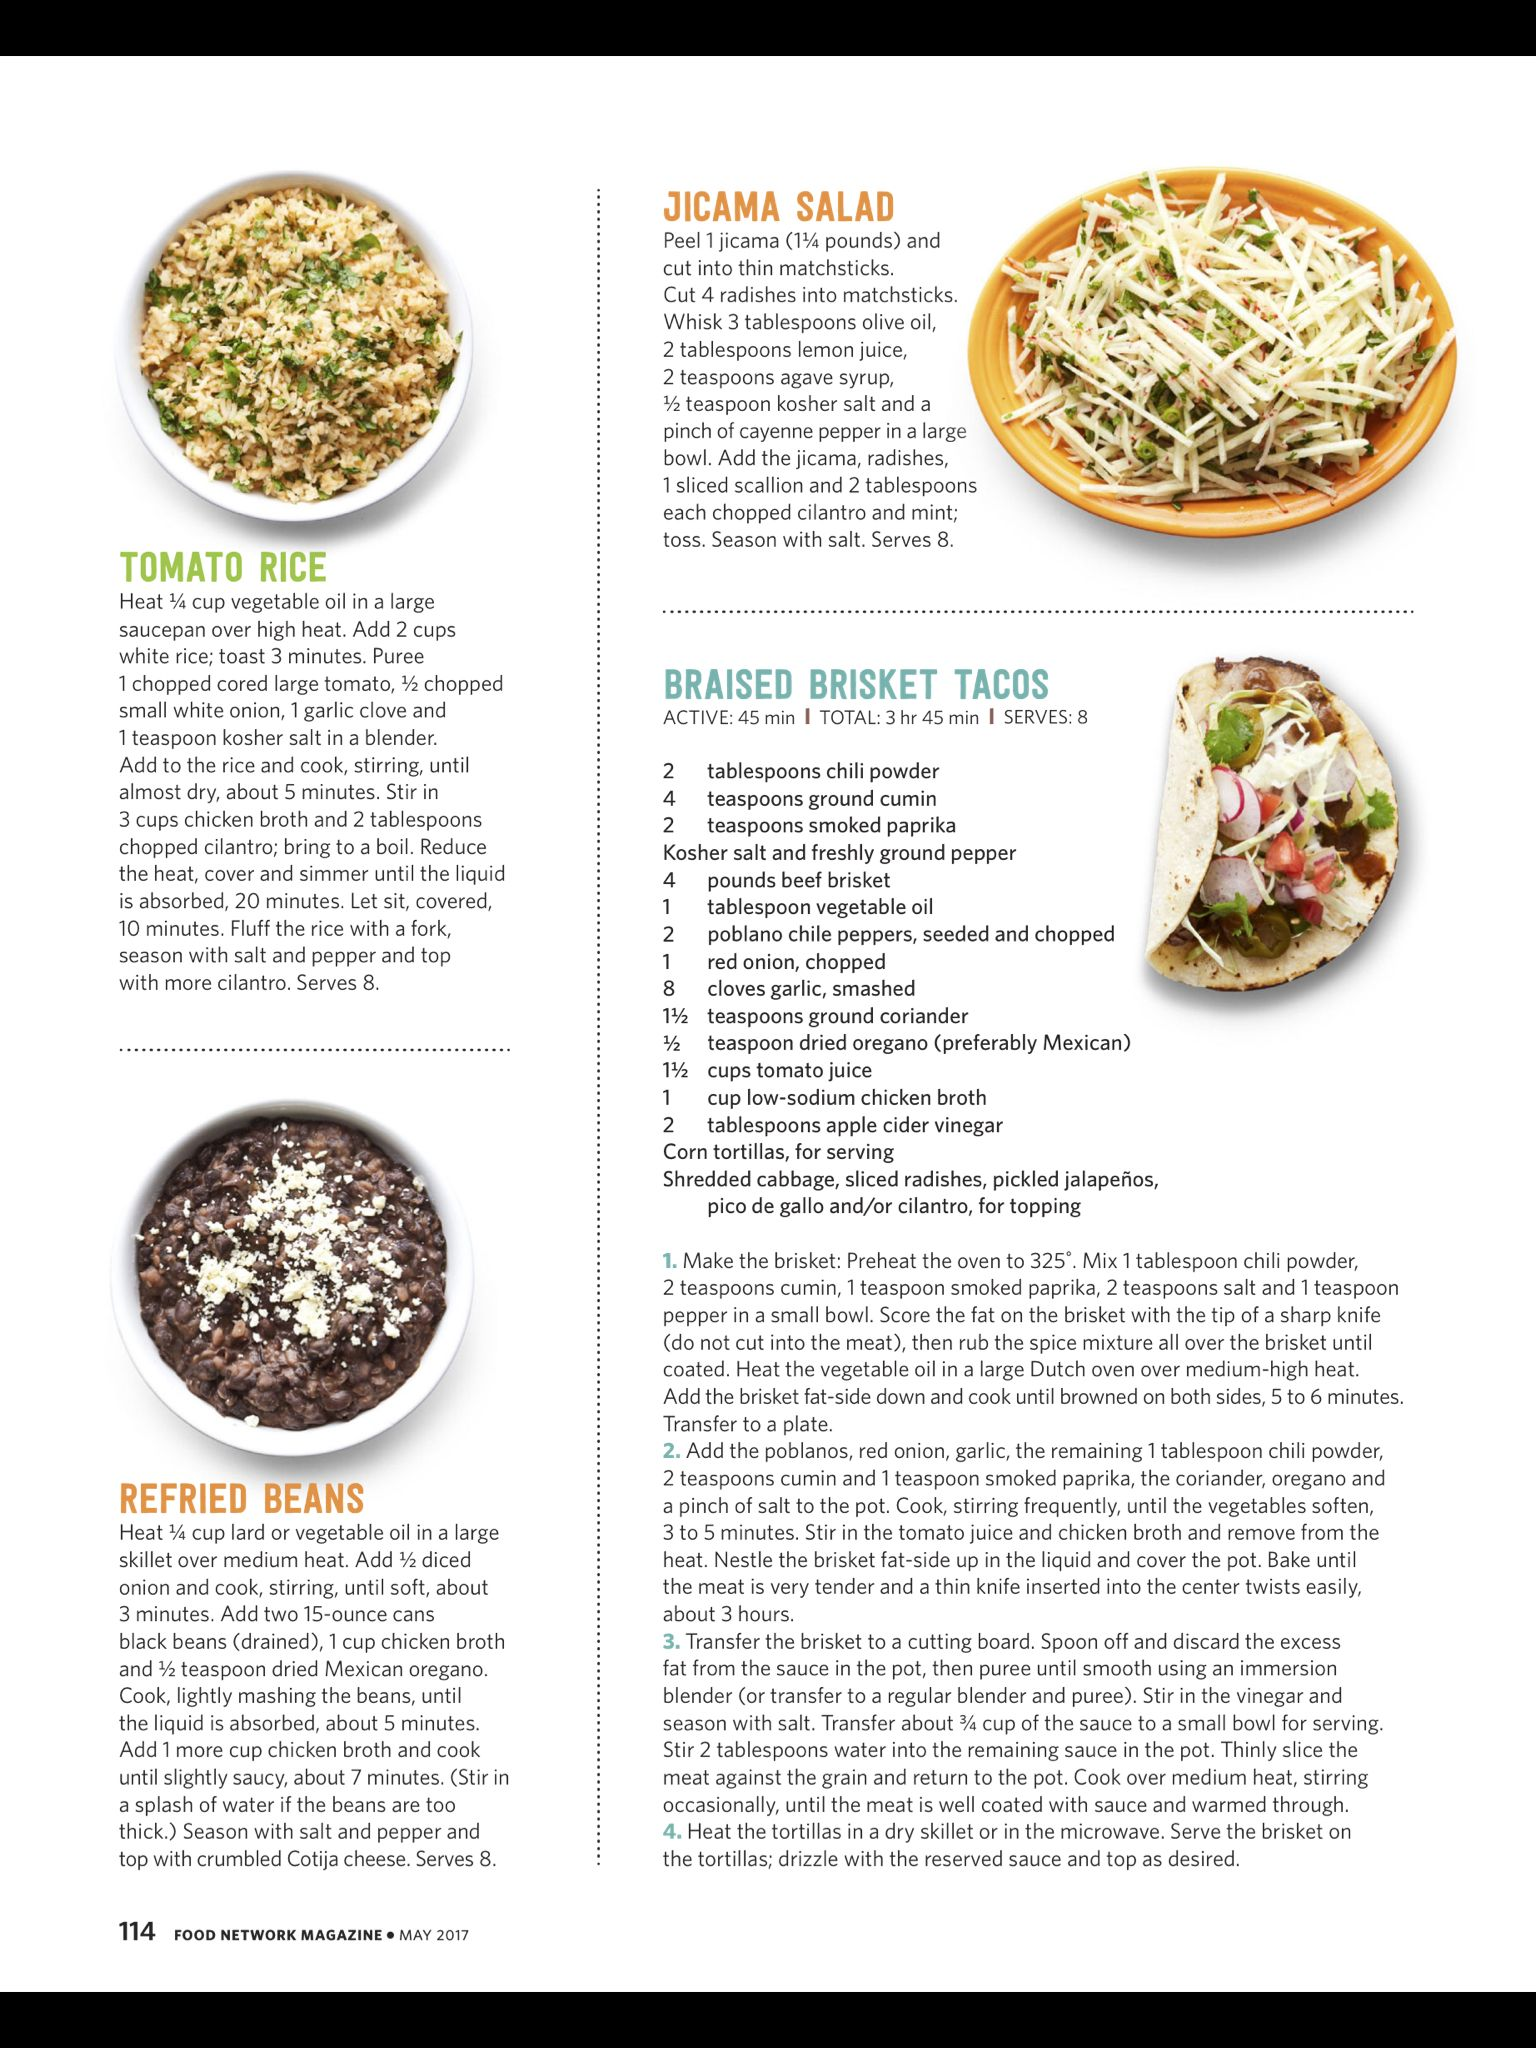 Its cinco de mayo from food network magazine may 2017 read it on its cinco de mayo from food network magazine may 2017 read it on the texture app unlimited access to 200 top magazines forumfinder Gallery